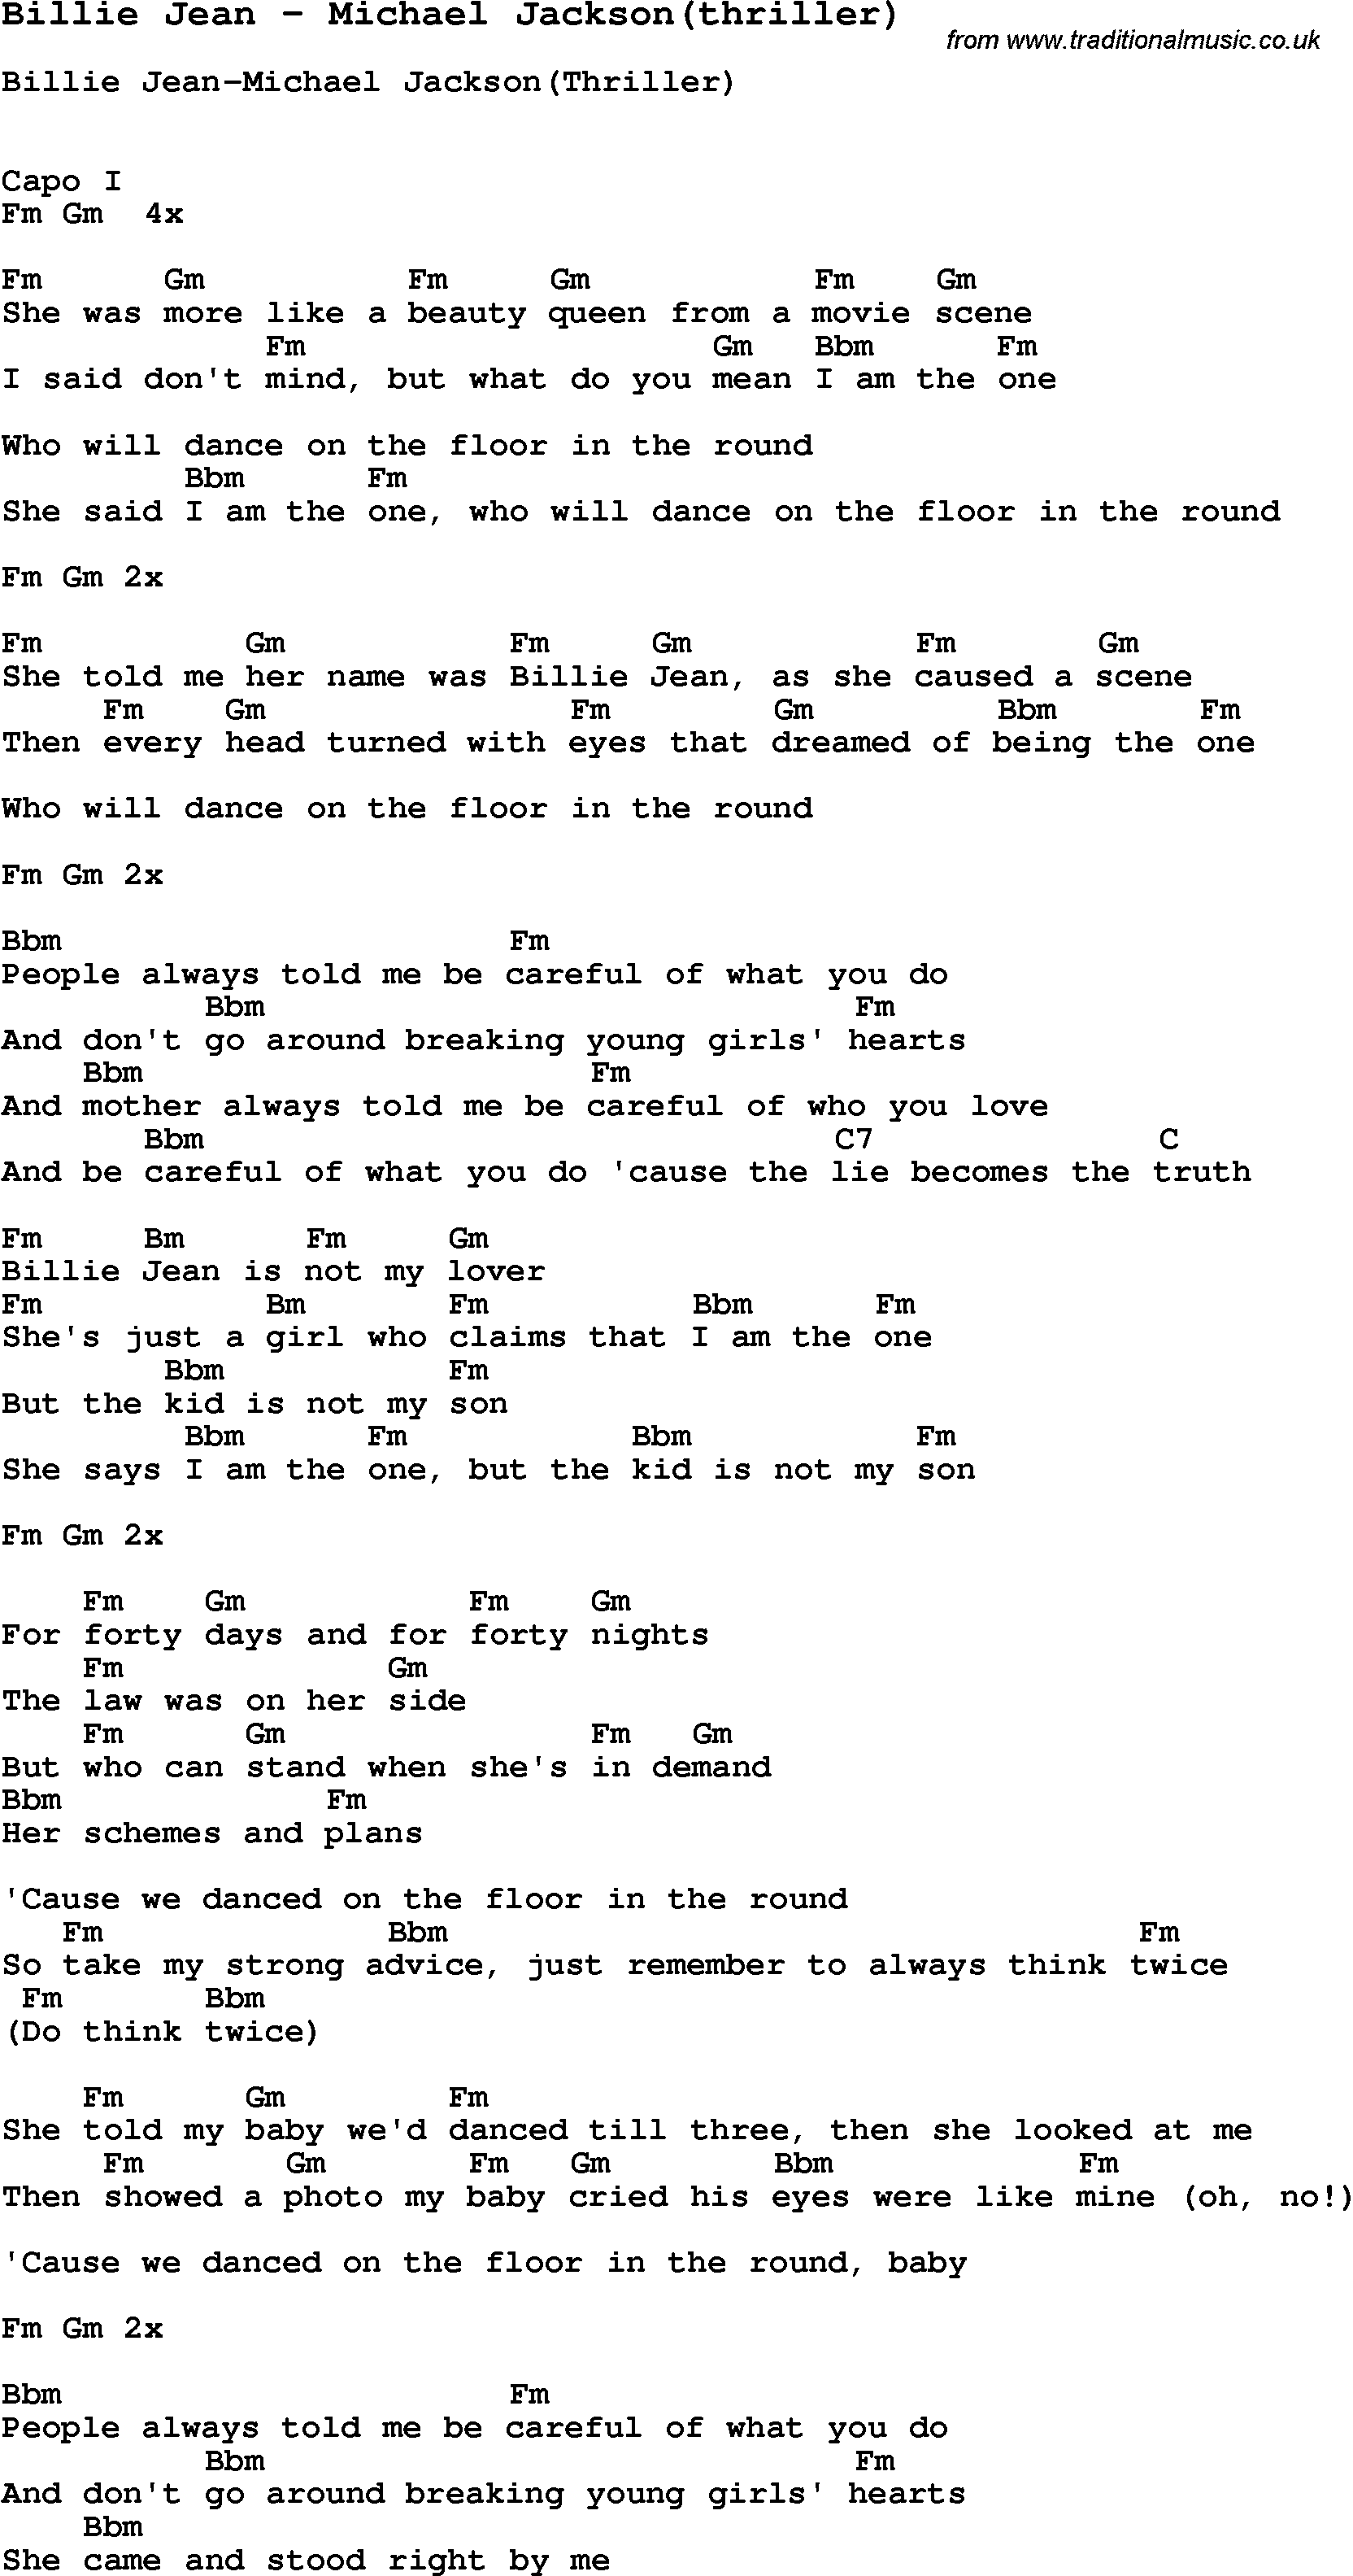 Michael jackson billie jean lyrics song billie jean by michael song billie jean by michael jacksonthriller song lyric for vocal performance plus accompaniment chords for ukulele guitar banjo etc hexwebz Image collections